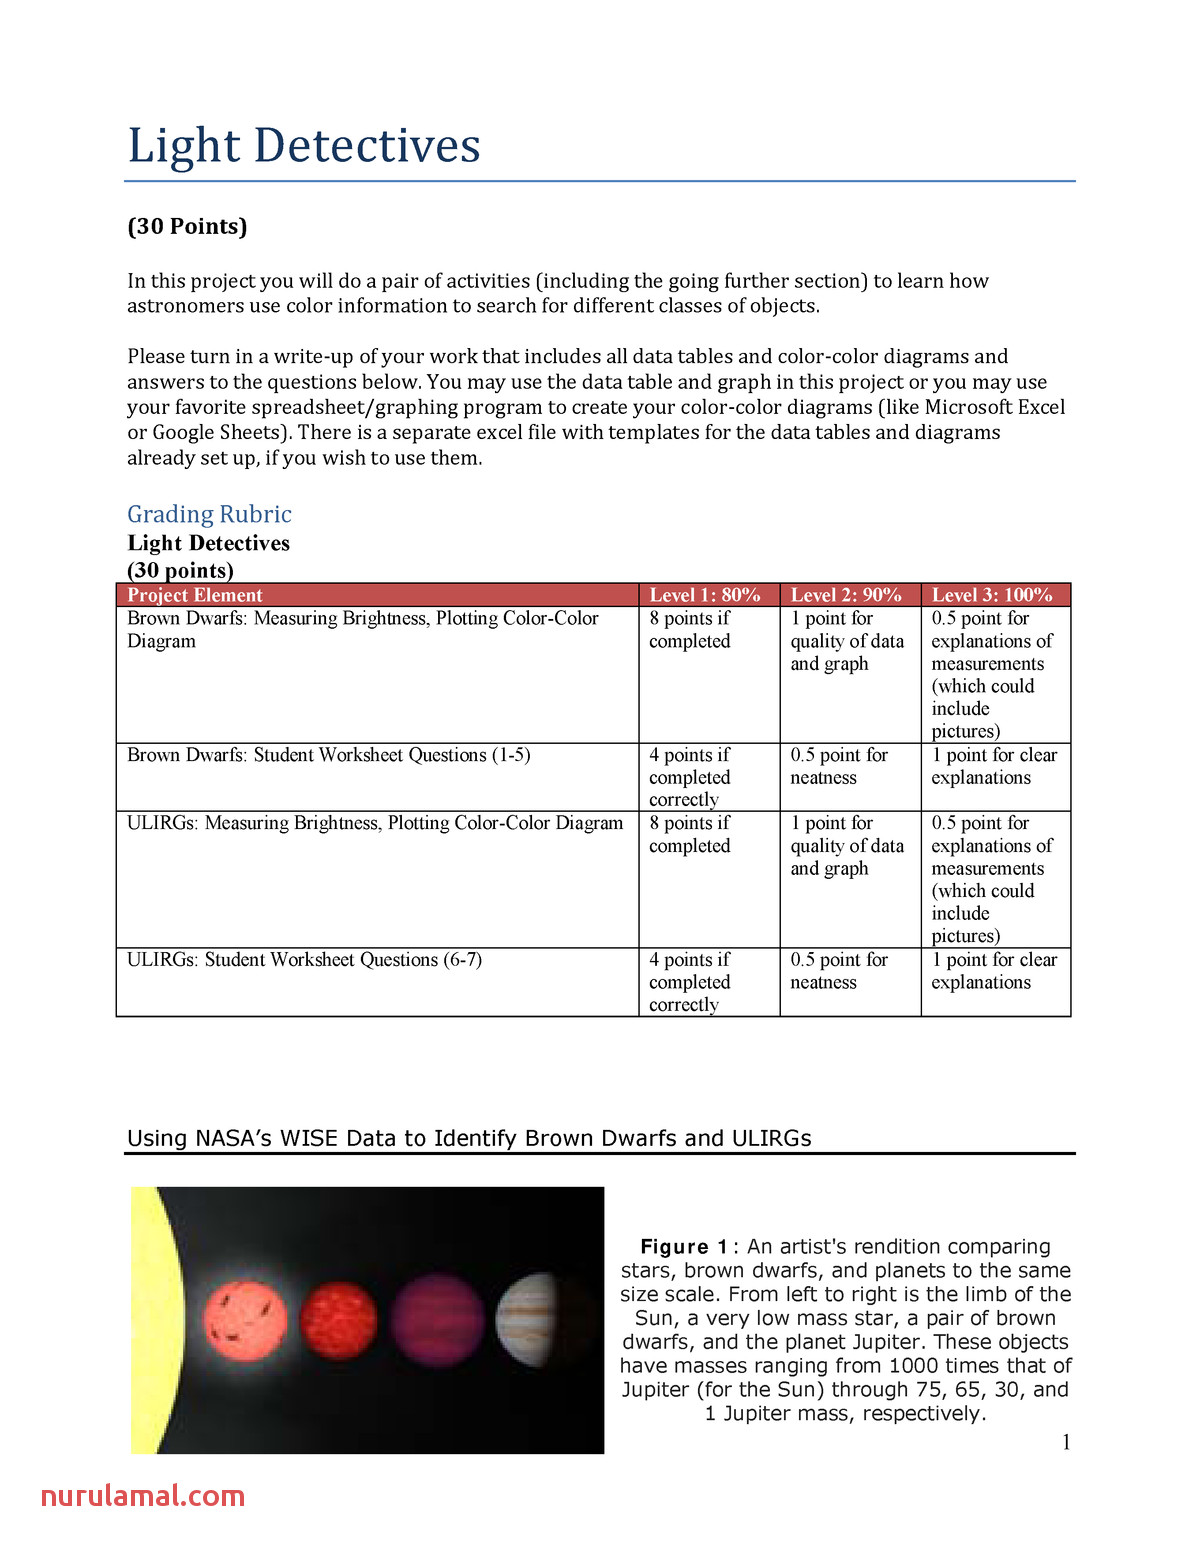 Light Detectives Instructions Of the Project astron 10